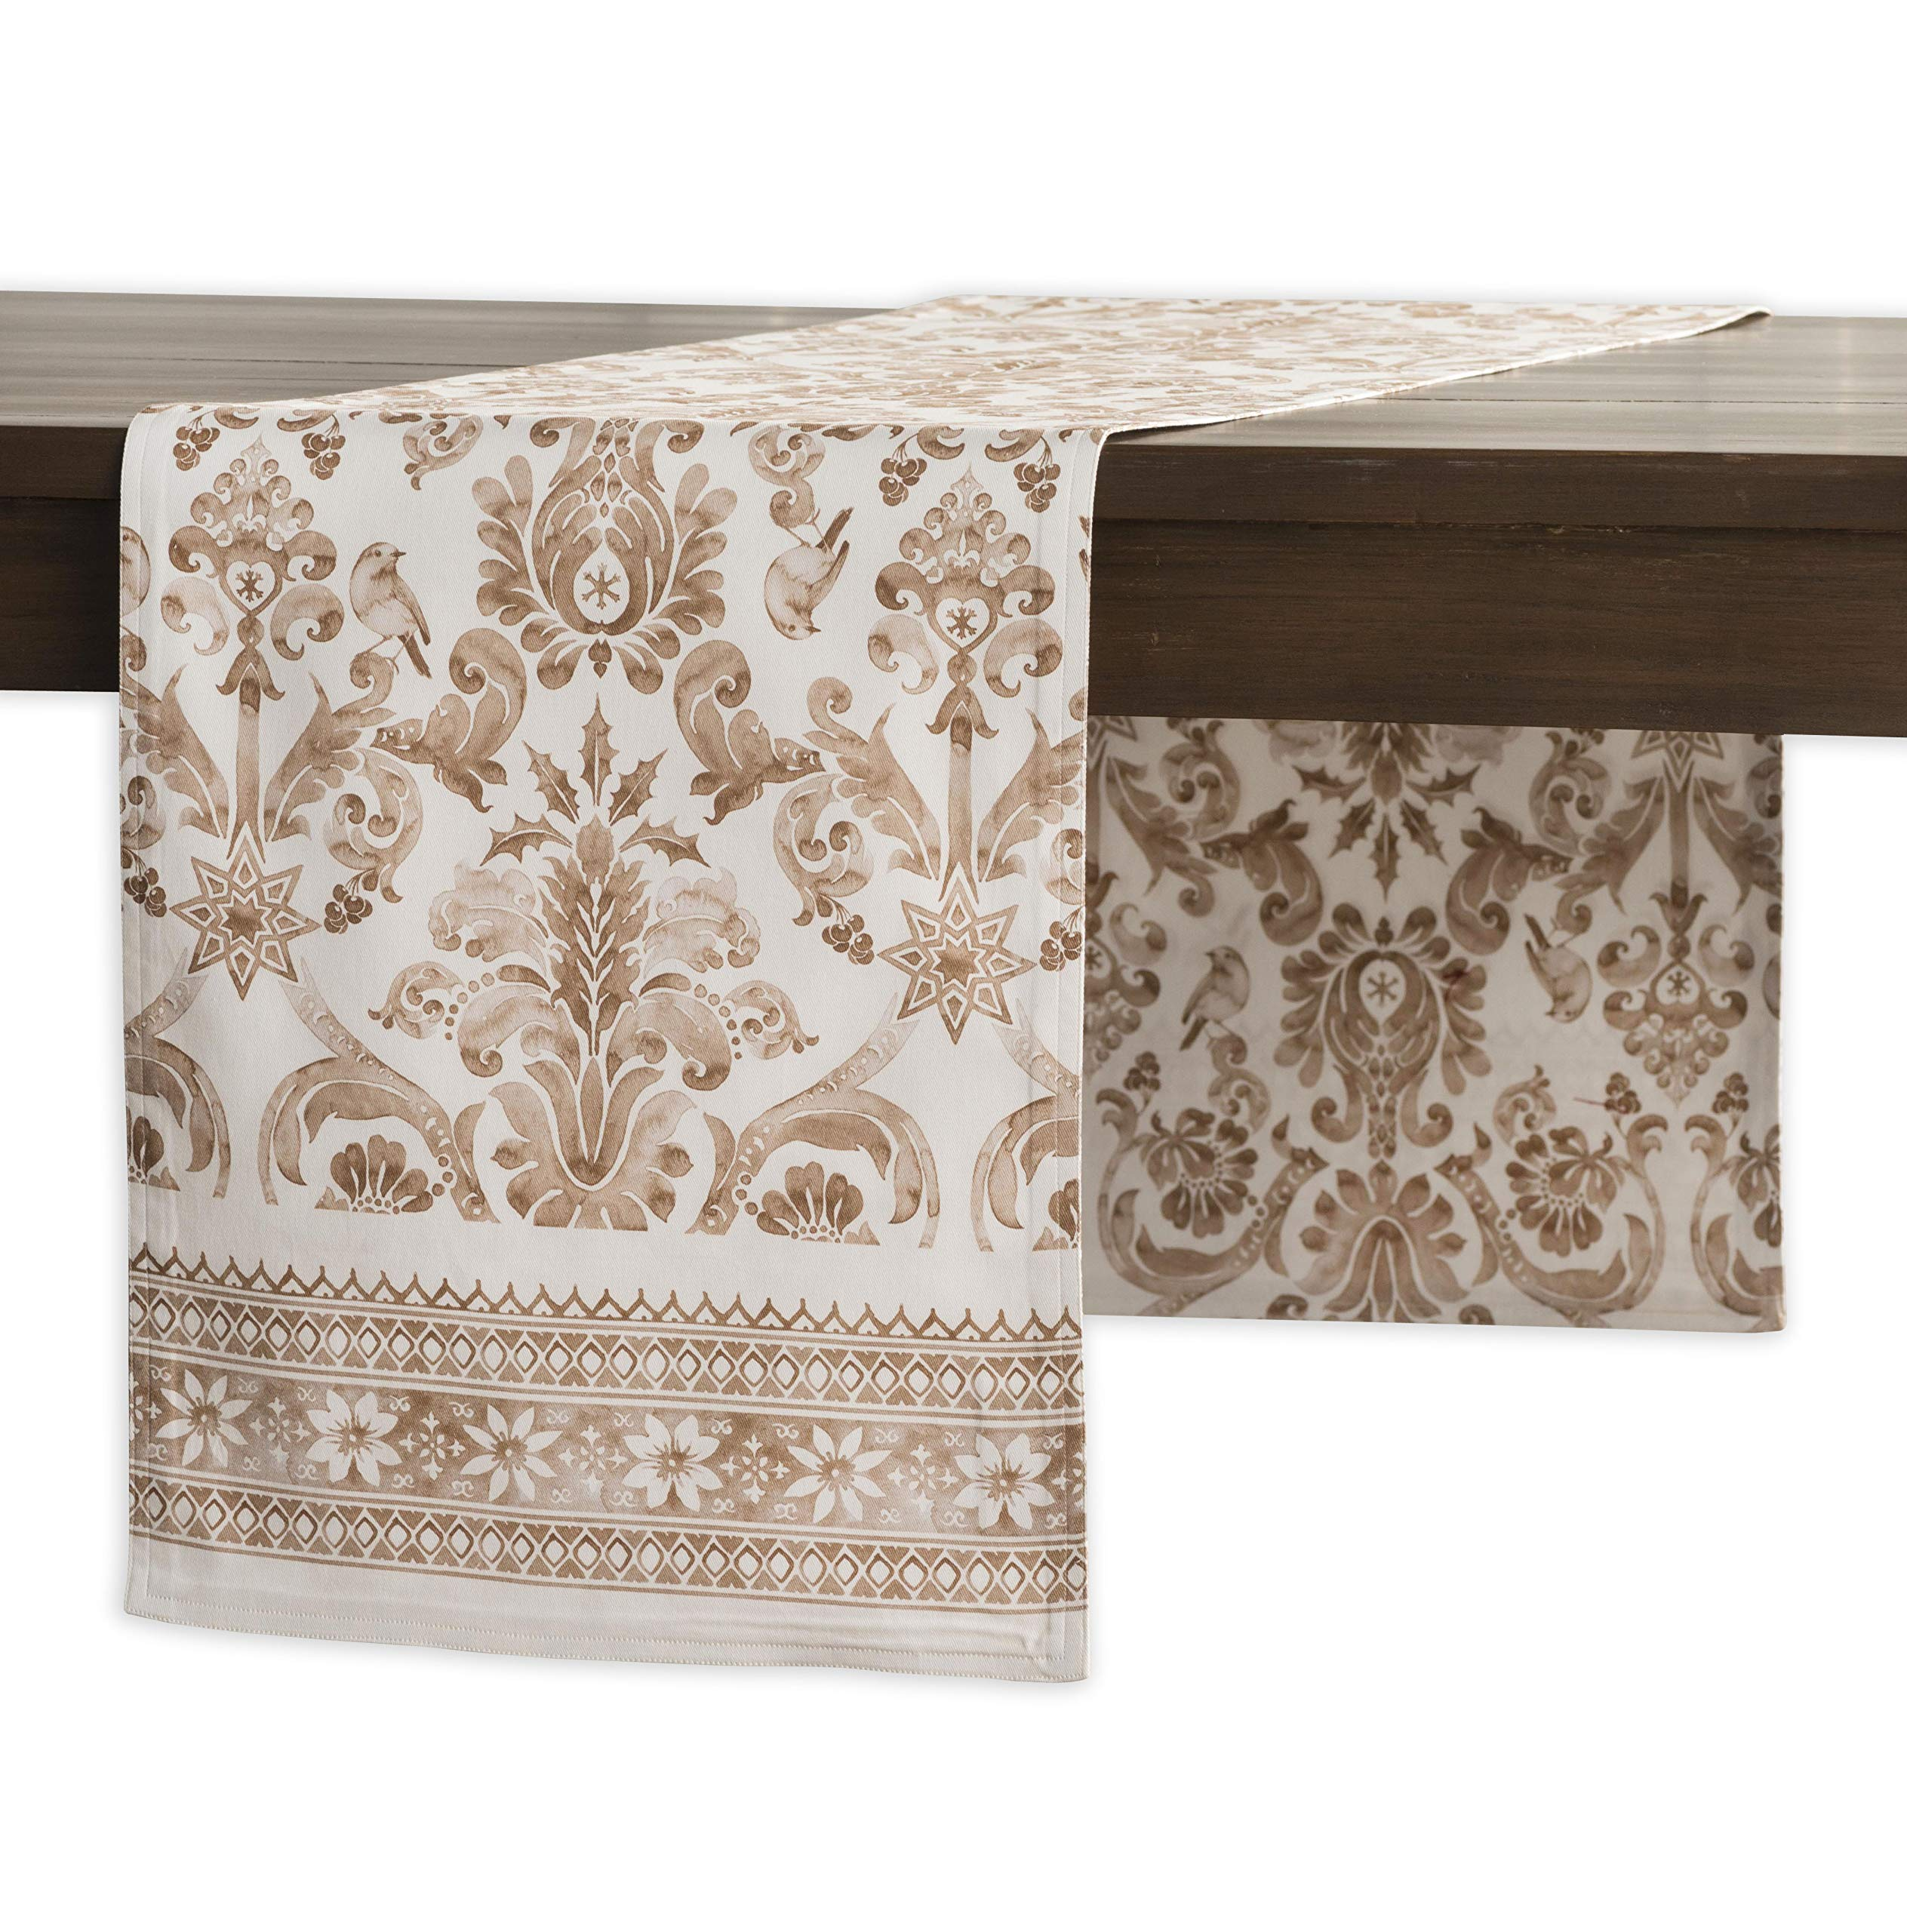 """Maison d' Hermine Allure 100% Cotton Table Runner 14.5 Inch by 108 Inch. - Designed in Europe. CHRISTMAS CLEARANCE SALE - SPECIAL DISCOUNT PRICE. Our collections are featured in Elle Decor and House Beautiful for """"Best Thanksgiving Tablecloth"""". 100% Cotton and Machine washable. Package Includes : 1 Table Runner - table-runners, kitchen-dining-room-table-linens, kitchen-dining-room - 917EZ3Ff71L -"""